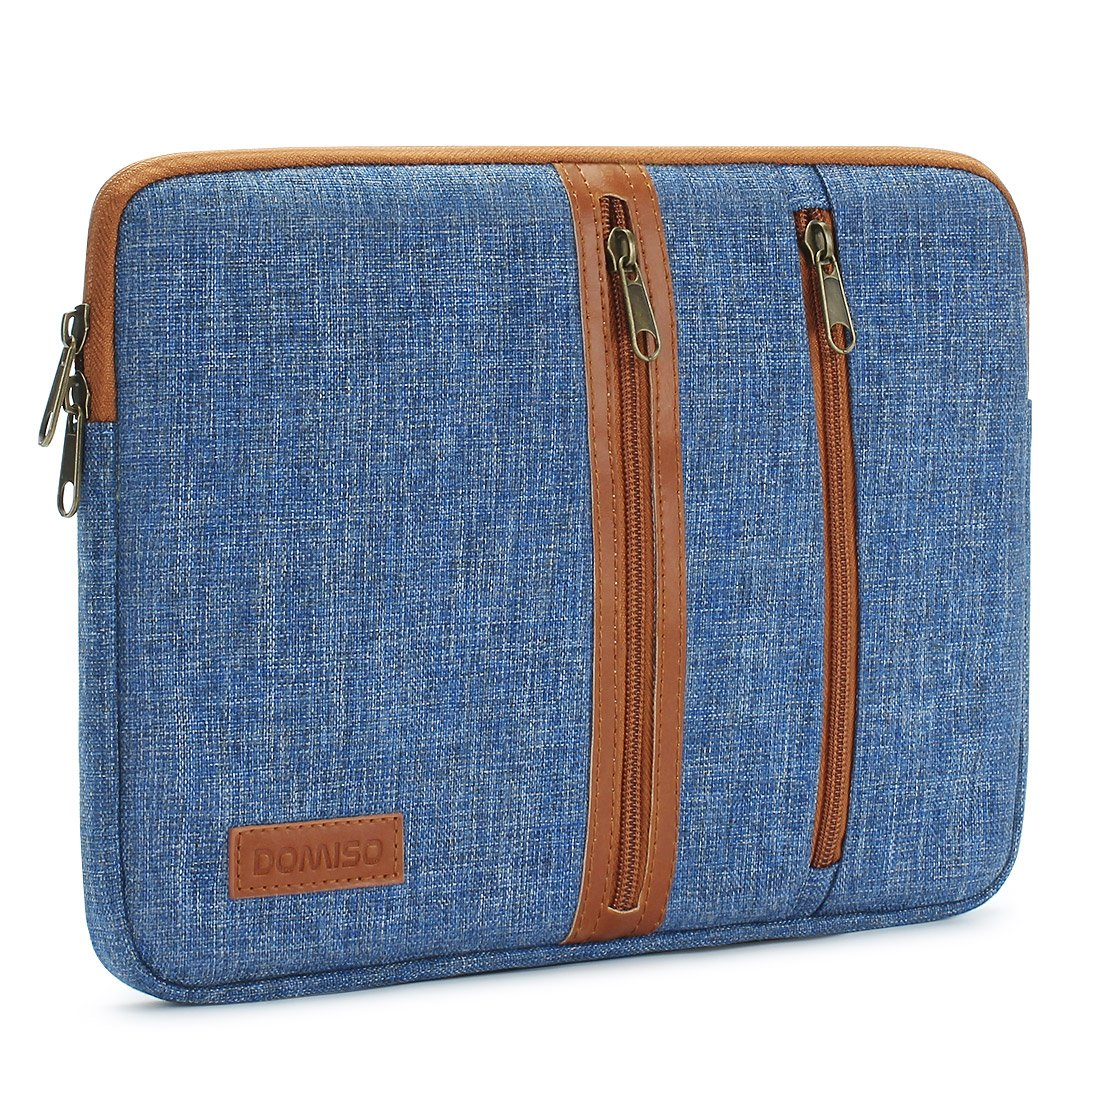 DOMISO 10 Inch Laptop Sleeve Canvas Notebook with Zipper Tablet Pouch Cover 3 Layer Protection Bag 2 Pockets Case for 12'' MacBook 3 / 10.8'' Microsoft Surface 3, Blue